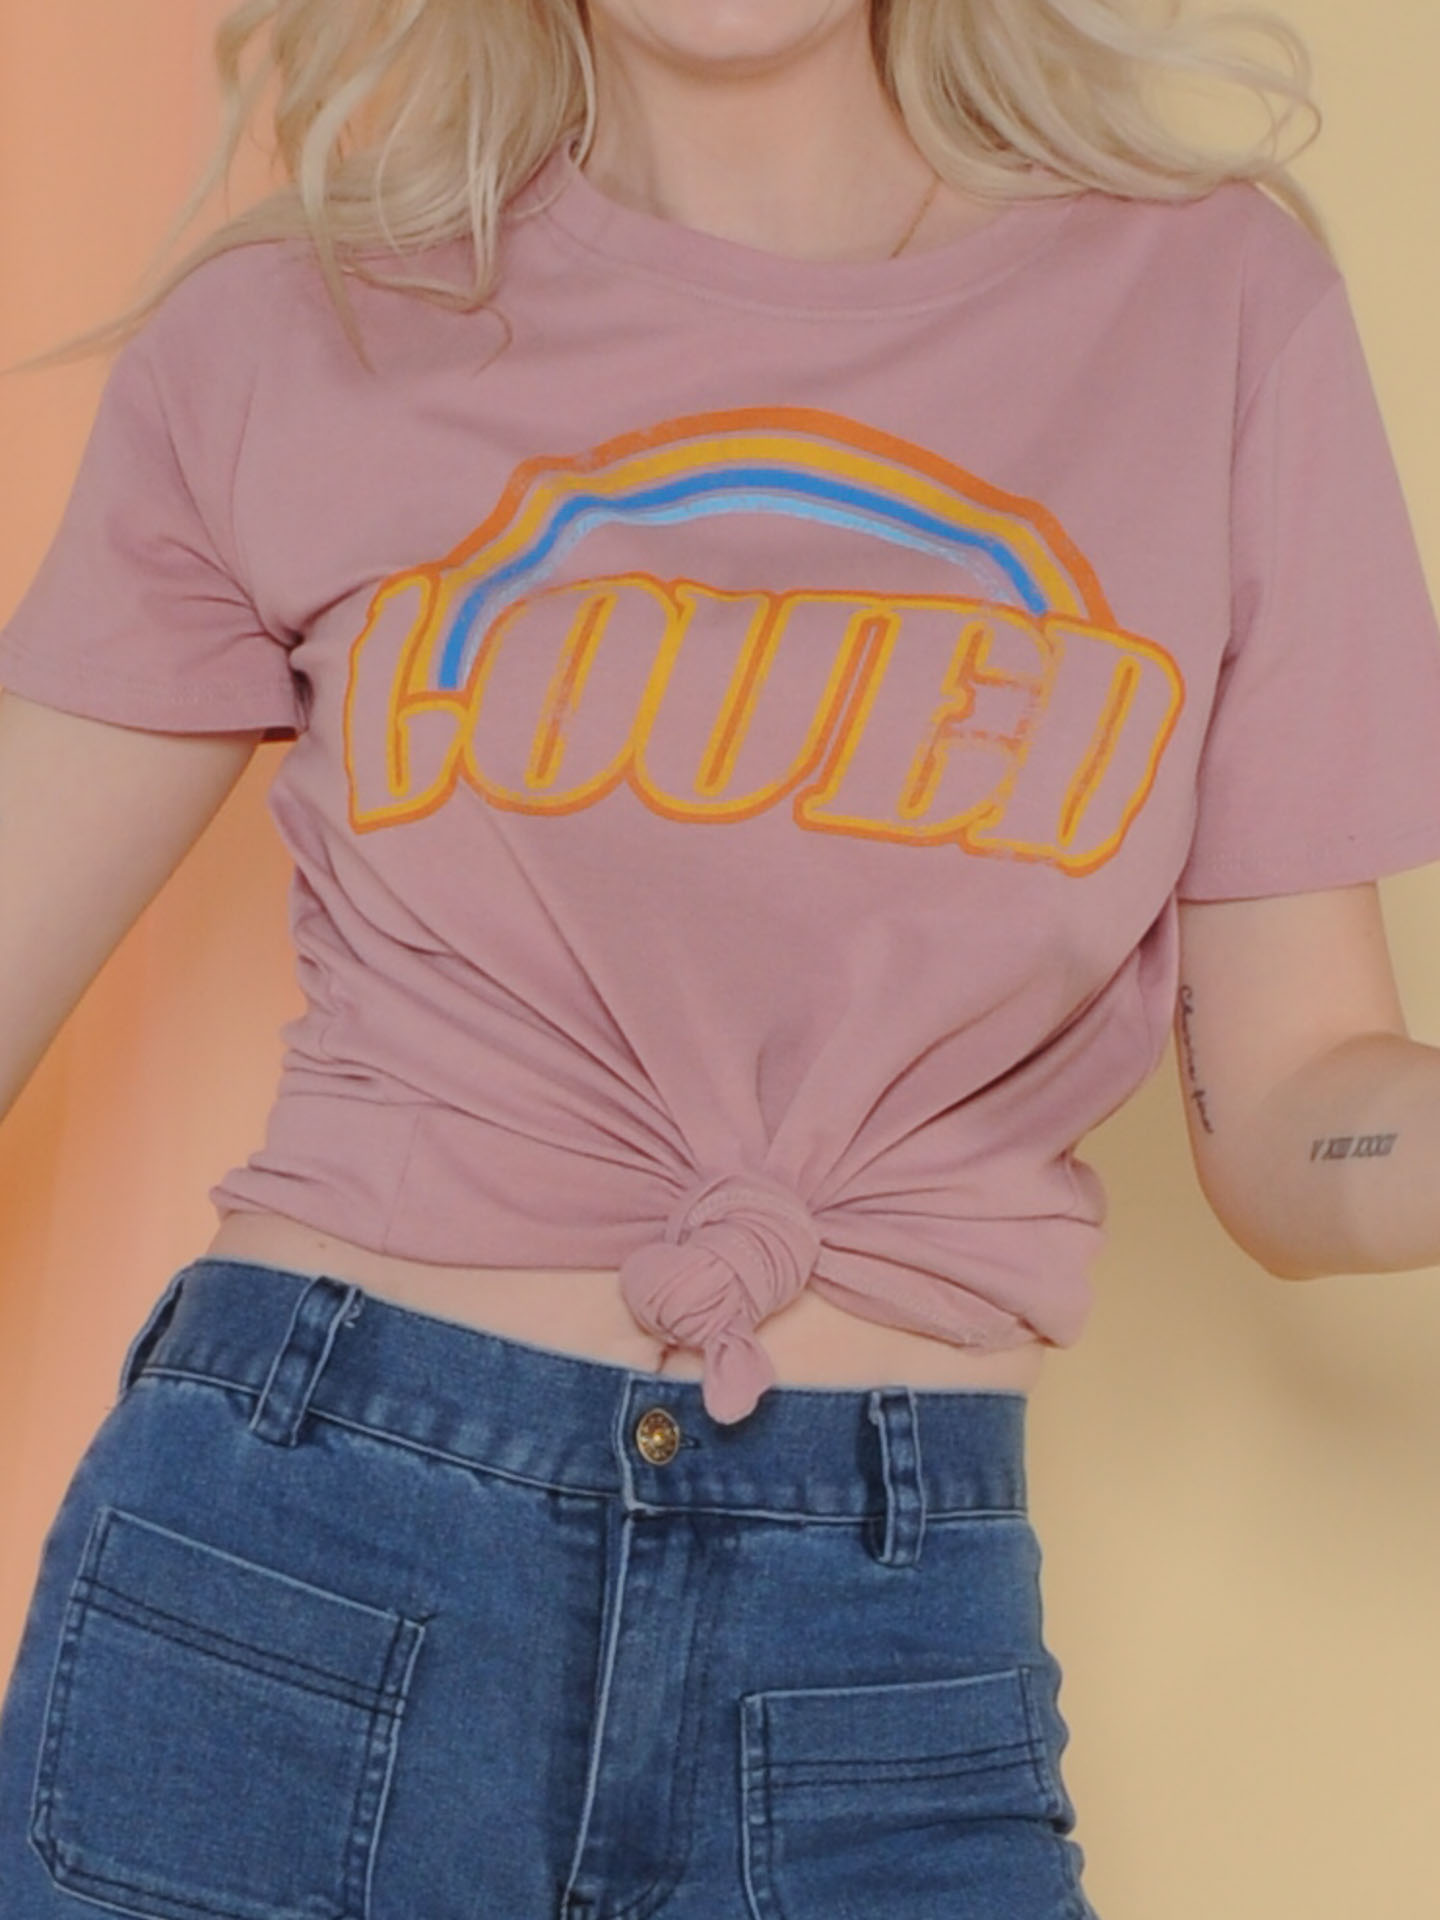 Loved Tee Pink Rainbow Graphic Tee Close Up